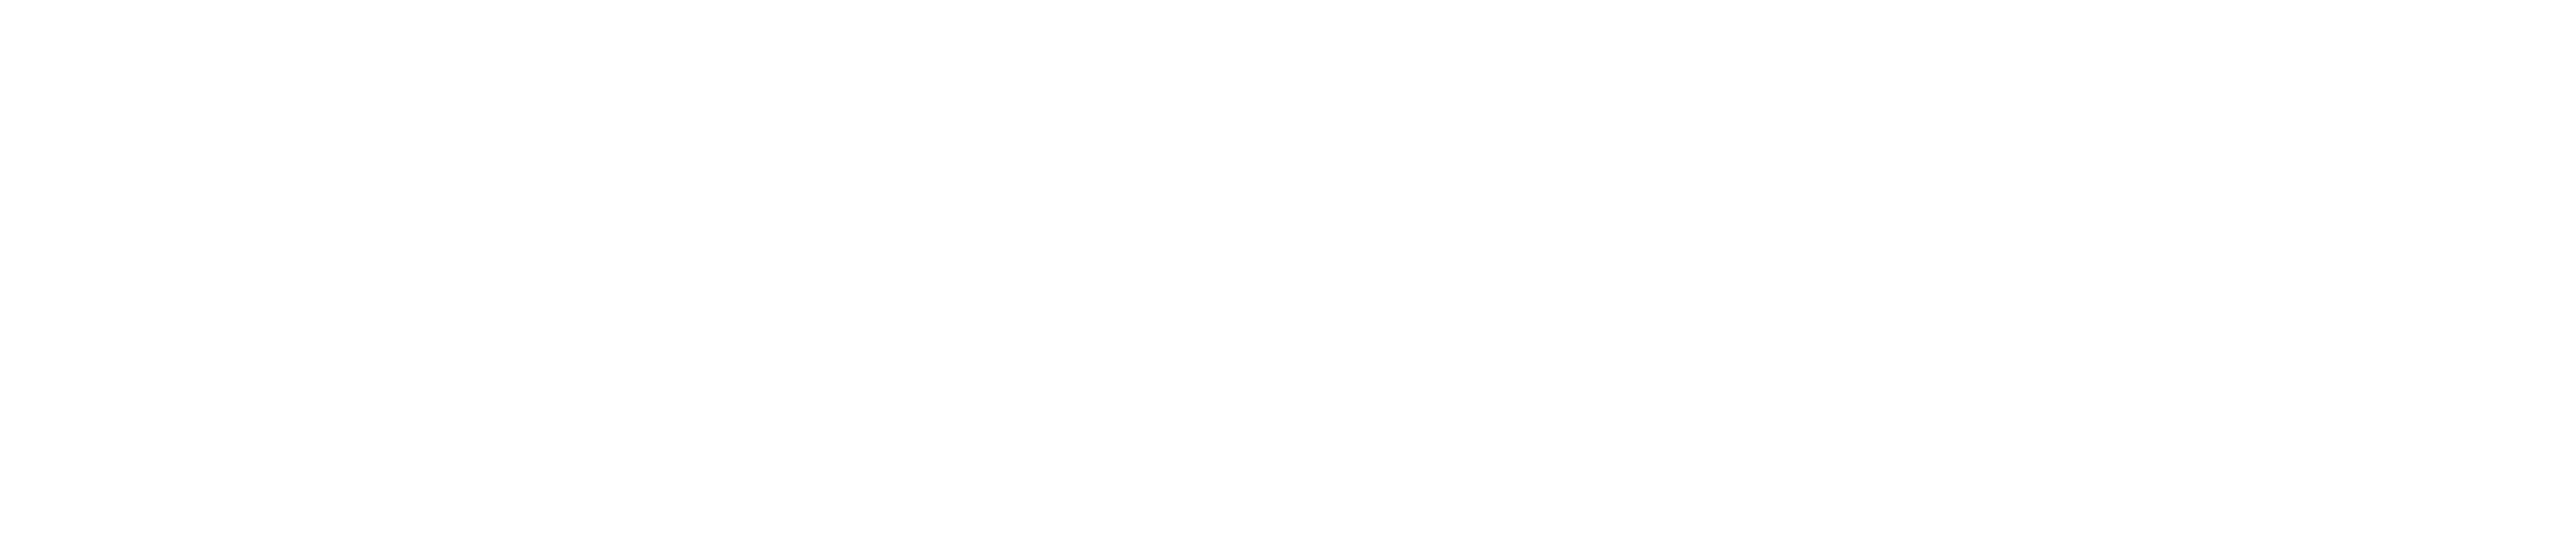 Your Calgary IT Source